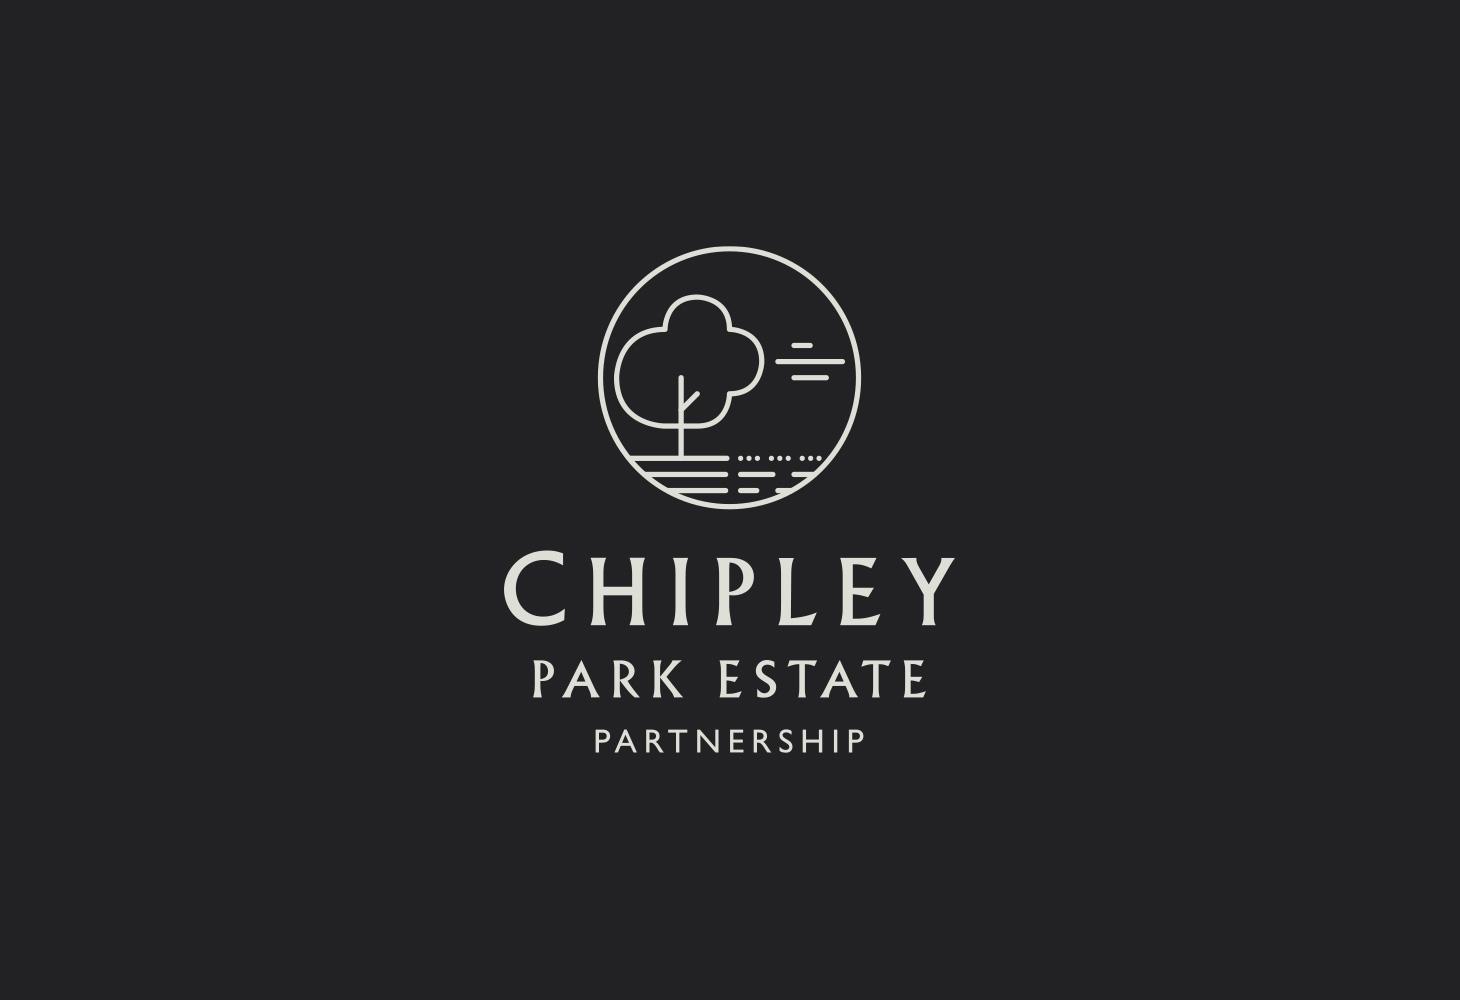 Chipley Park Estate - Logomark